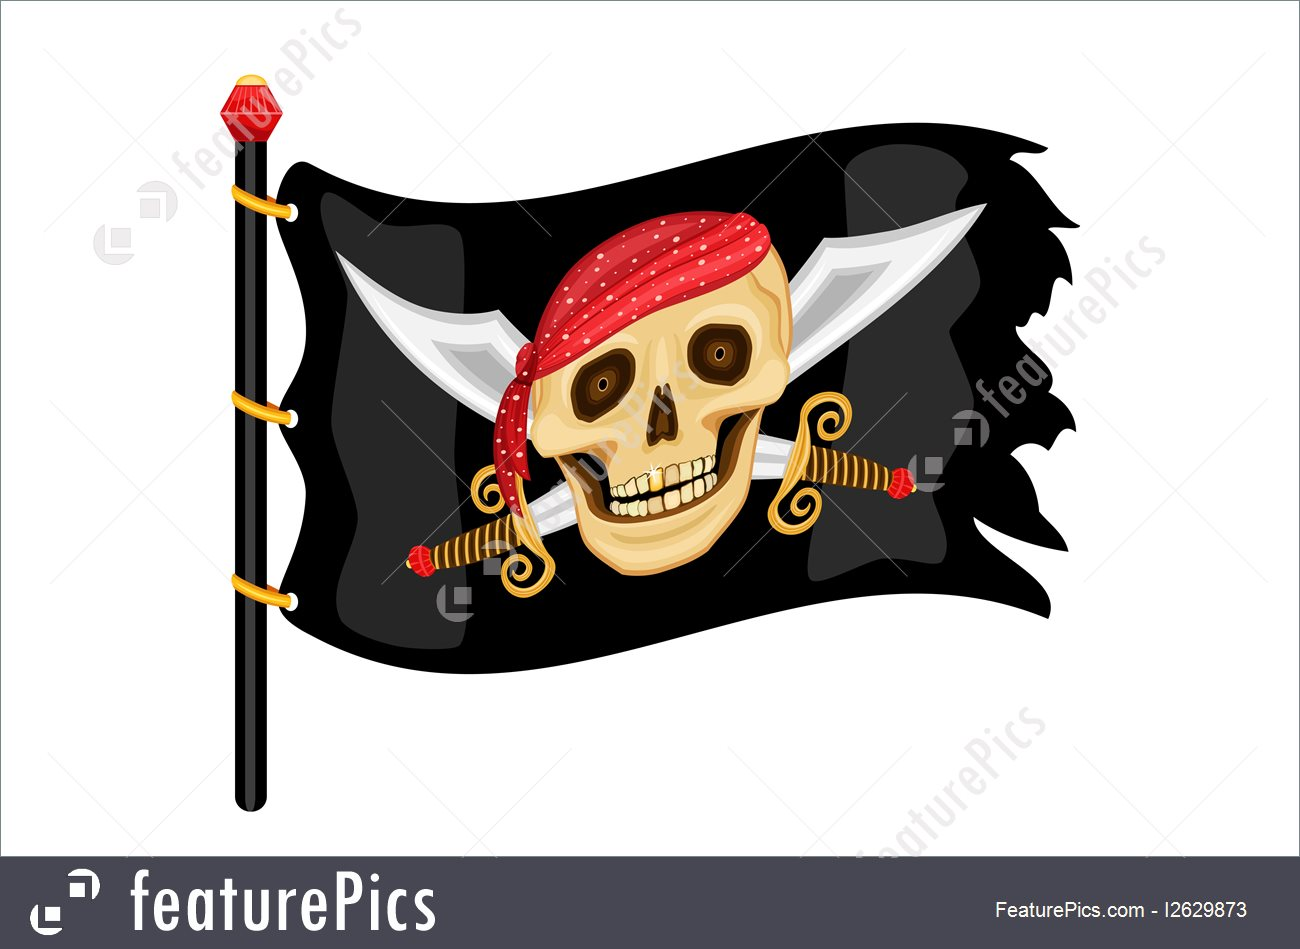 Flags: The Jolly Roger - pirate flag waving in the wind. Vector file saved